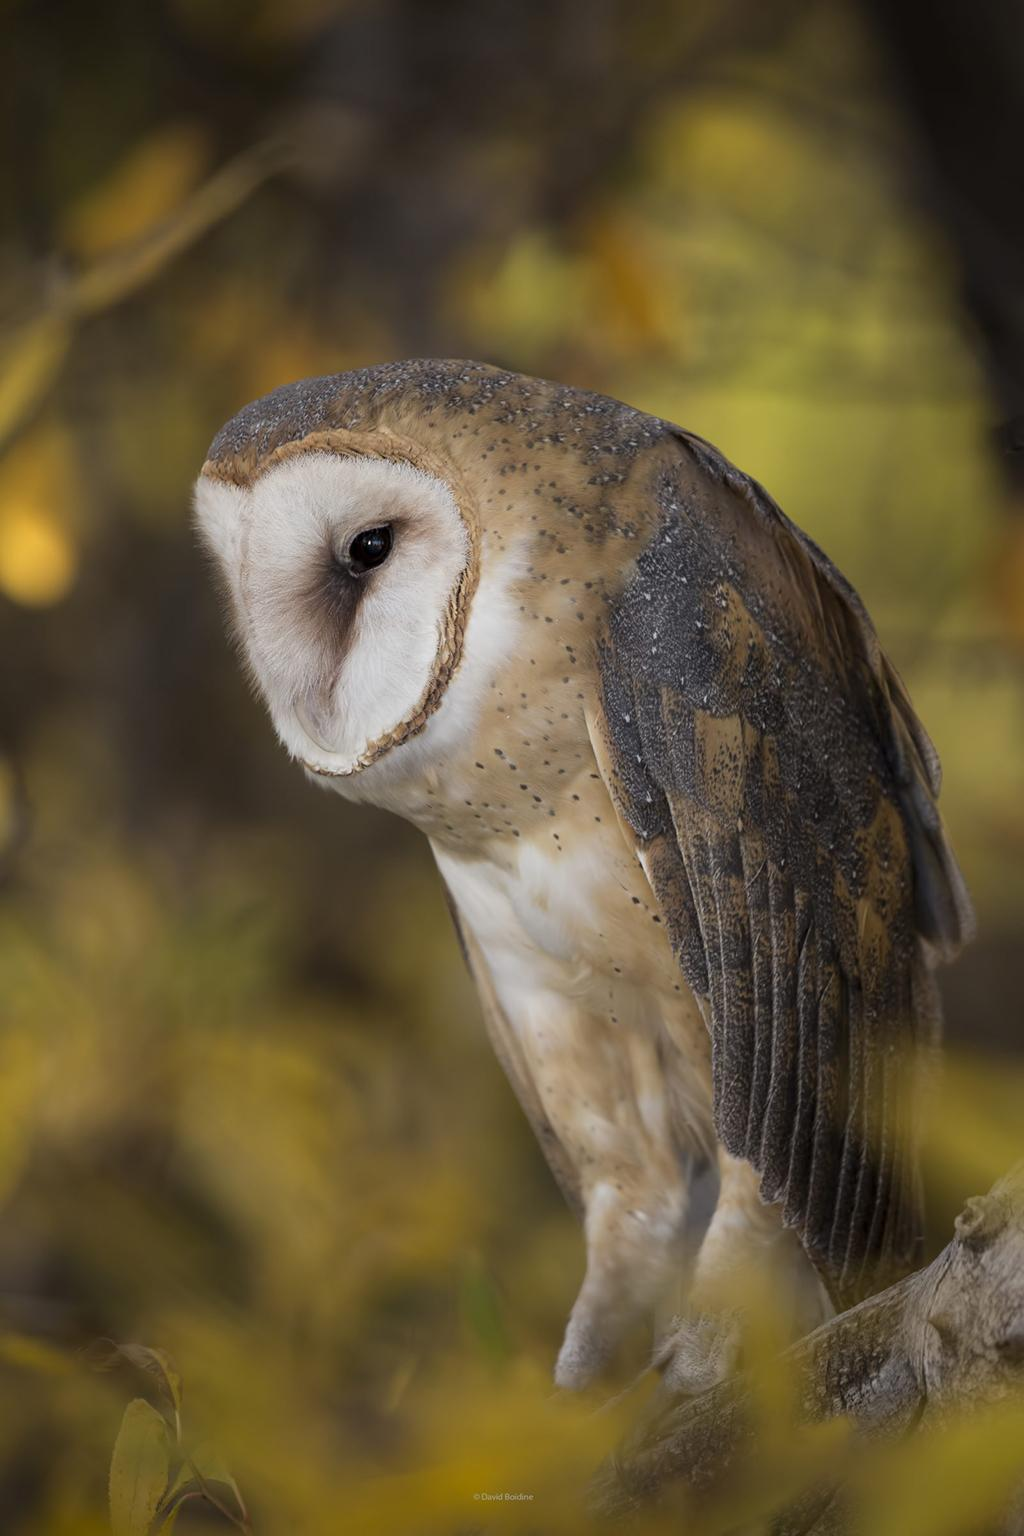 Today's Photo Of The Day is Morning Barn Owl by David Bodine.